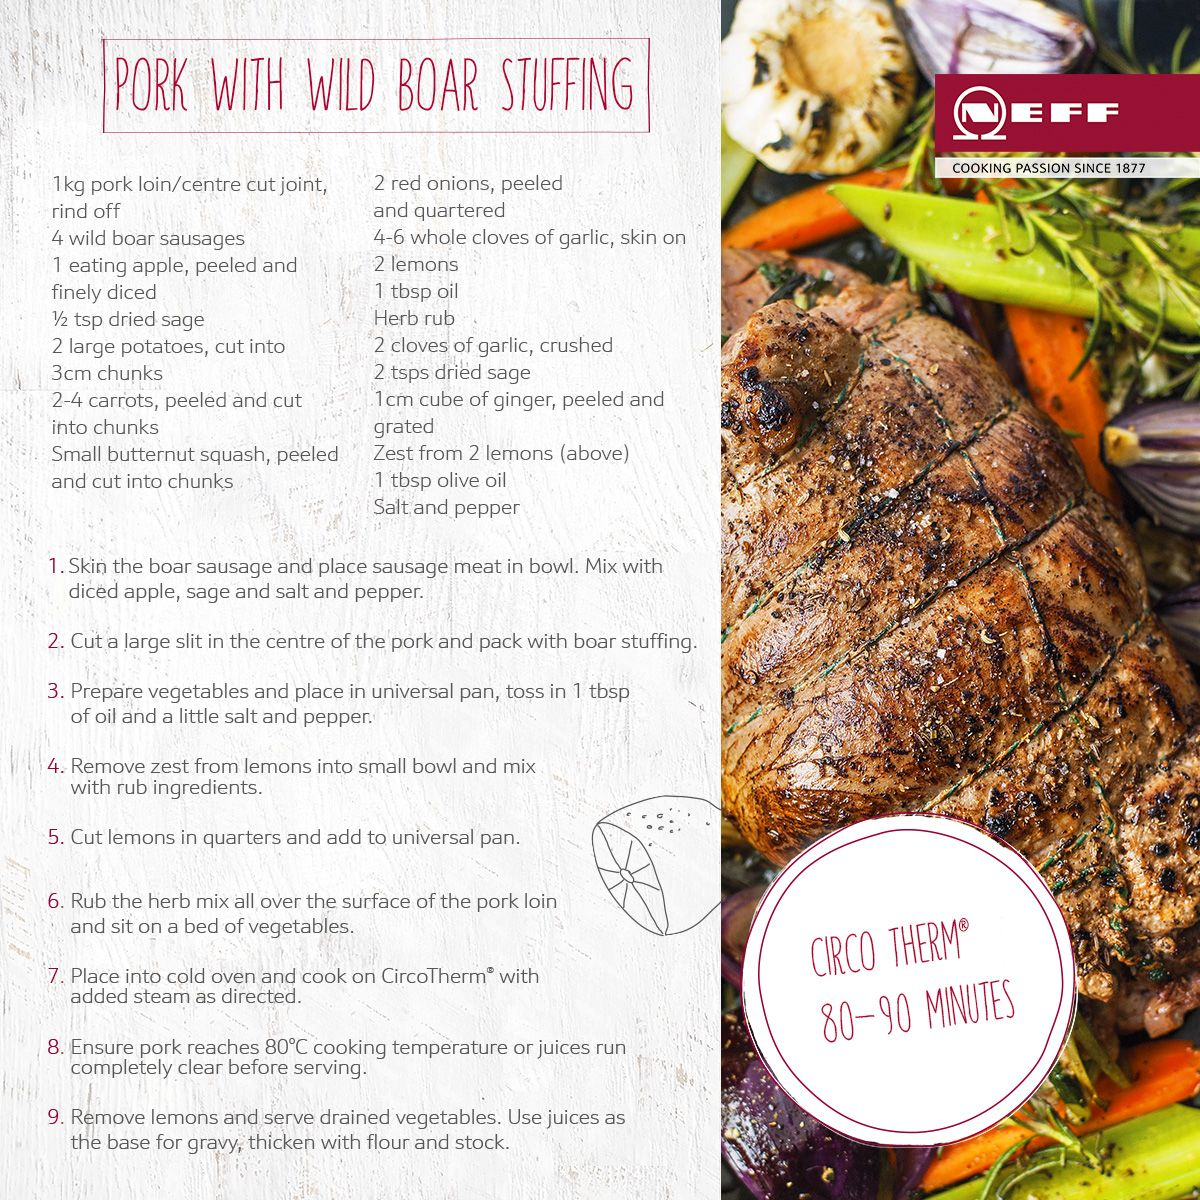 Ask your butcher for wild boar sausages and try our delicious recipe.